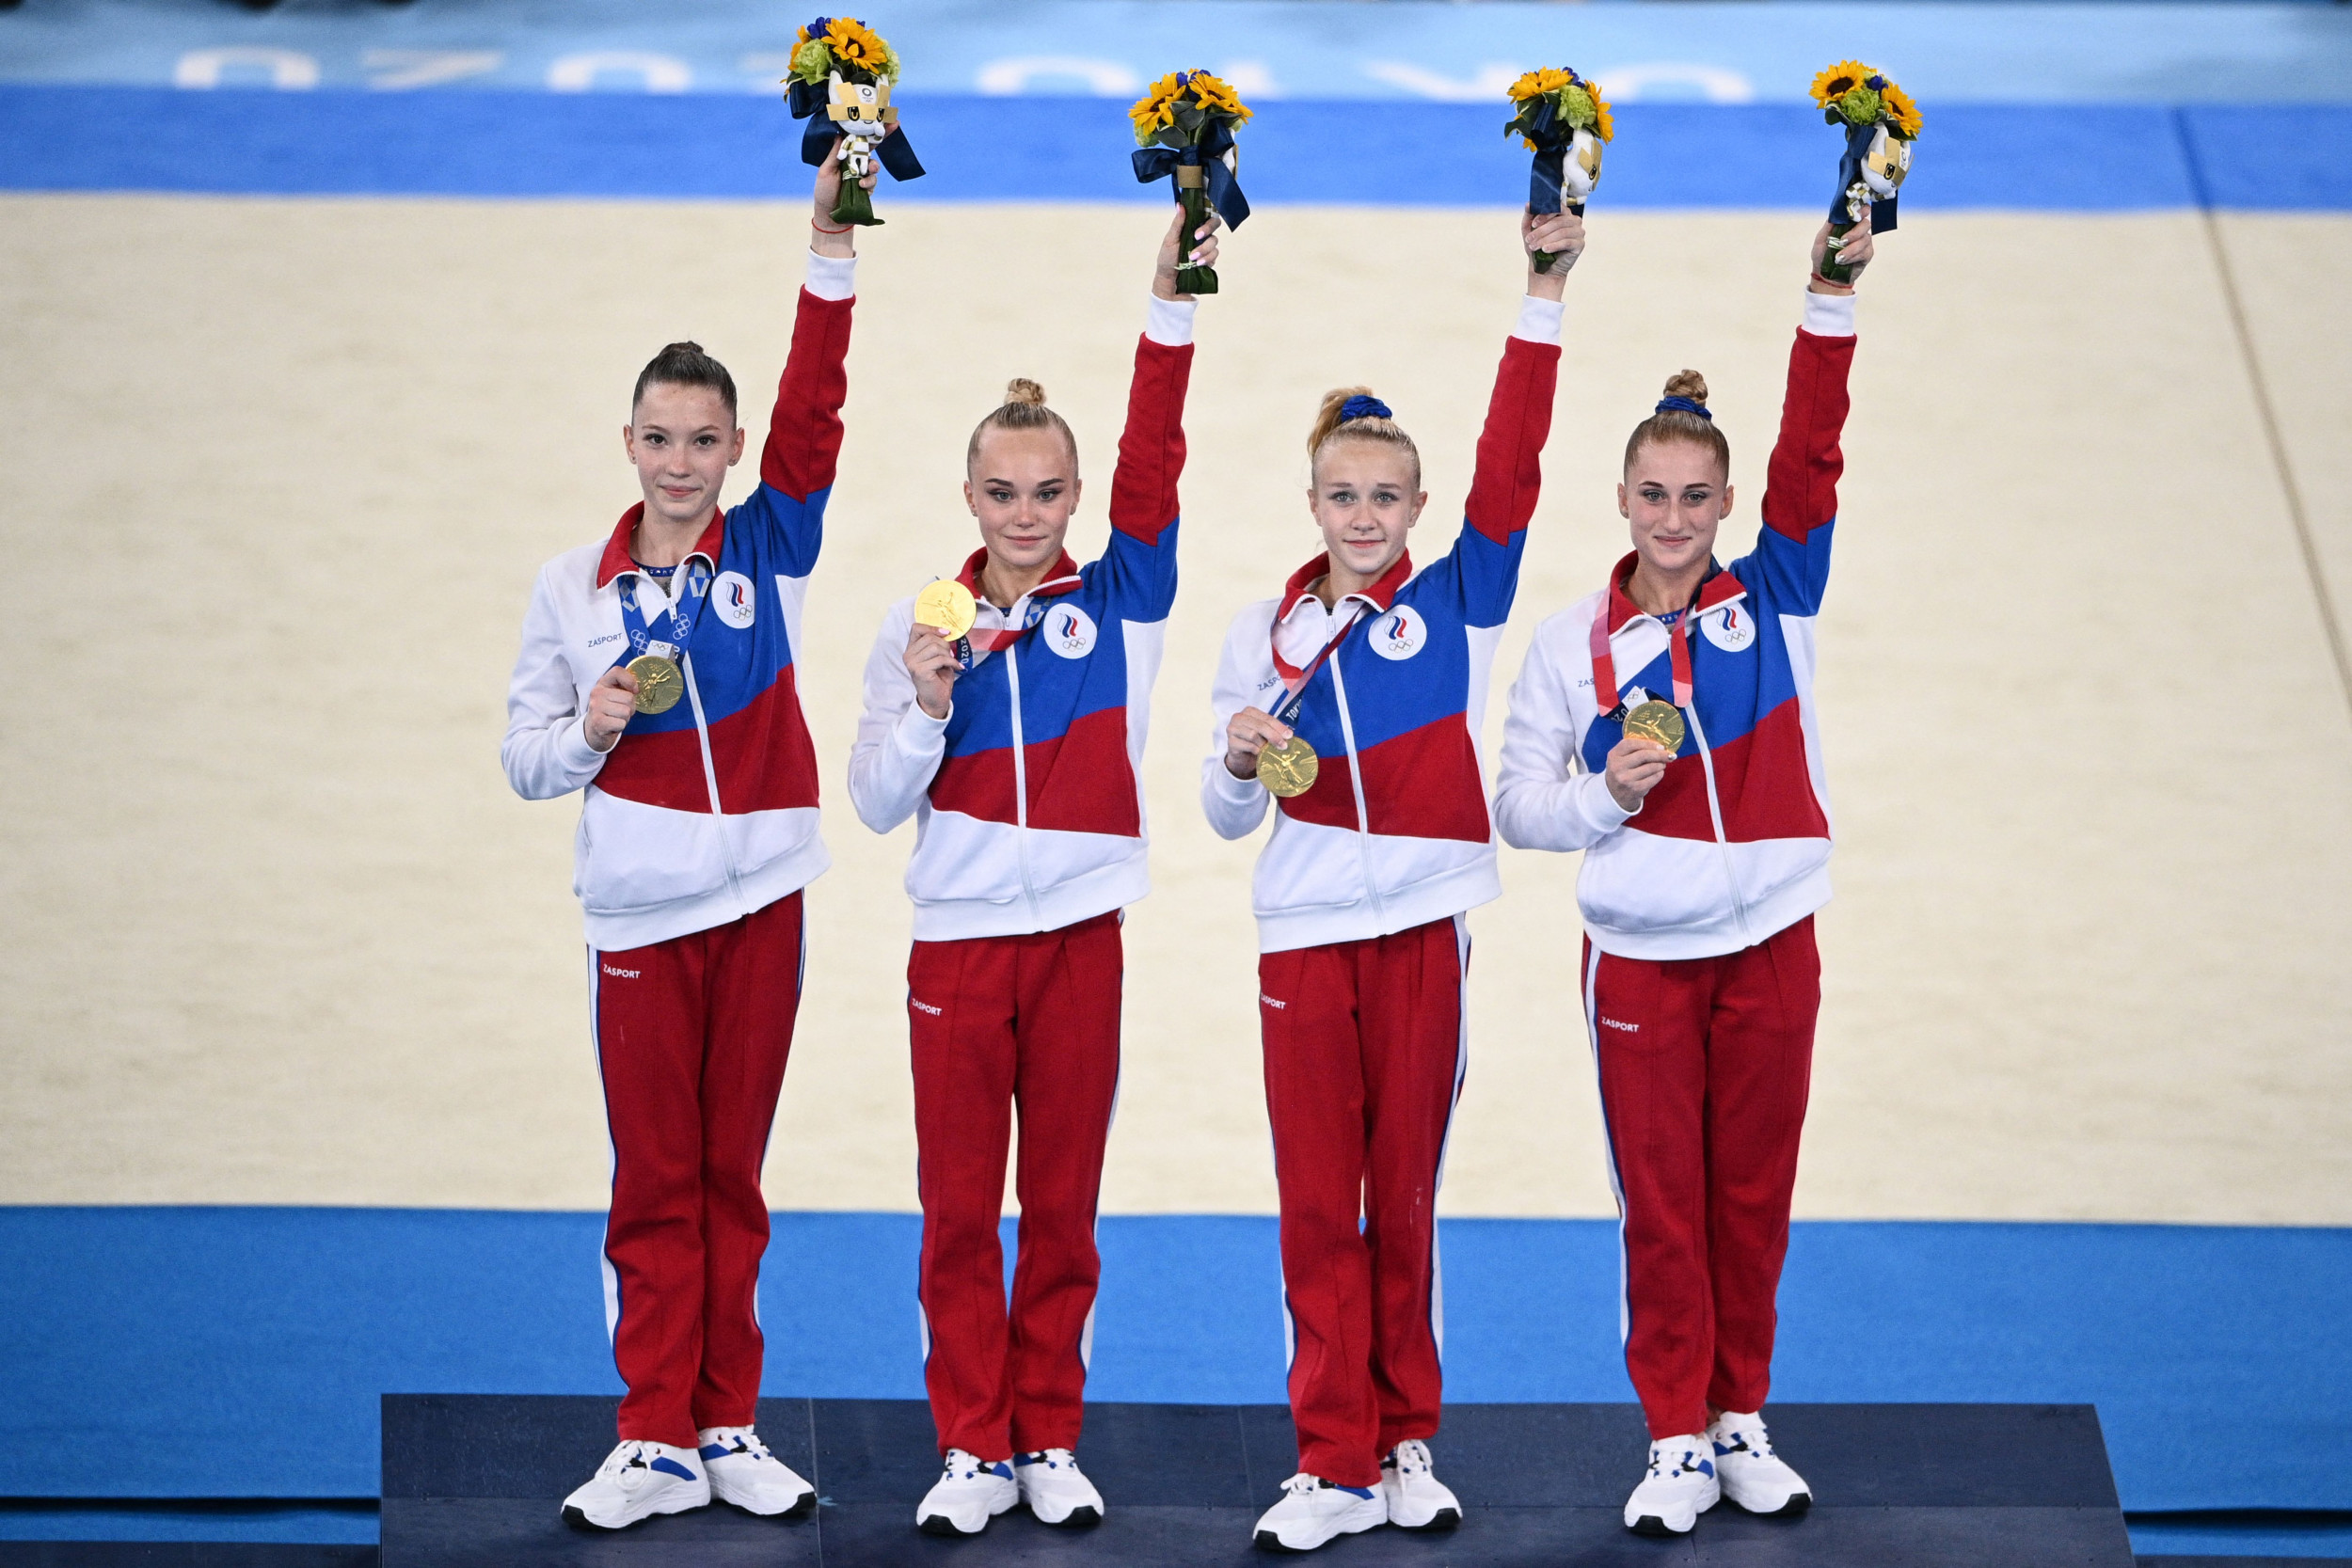 Russian Media Hail Gymnasts As 'Best in the World' After Beating Team USA